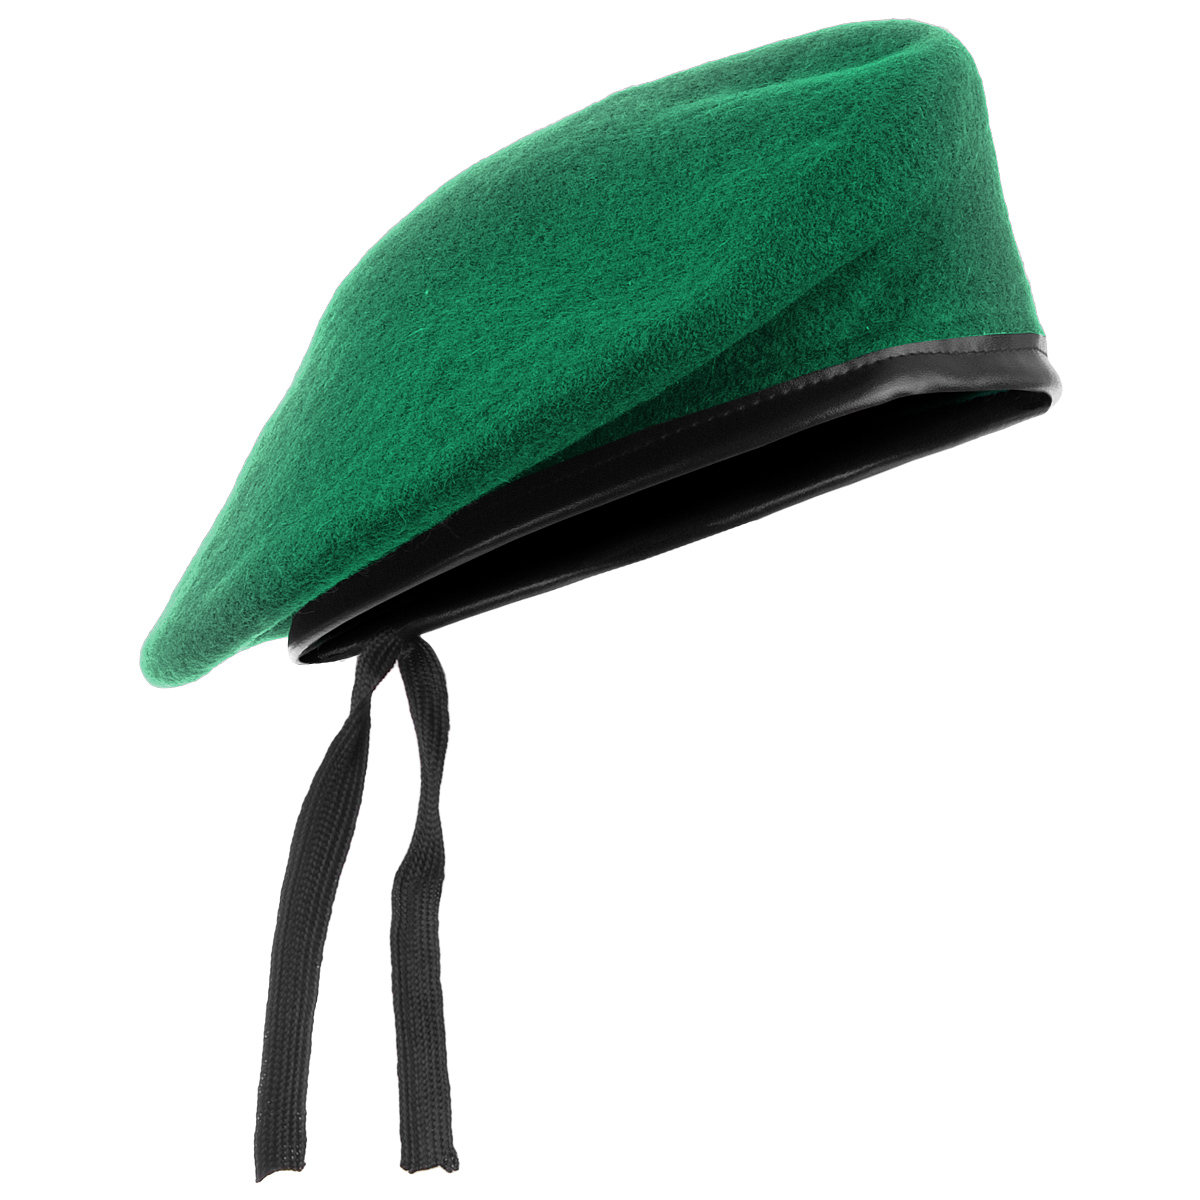 0a519c70000 Details about Military Style Tactical Classic Army Beret Mens Hat Uniform  Cap Wool Green Olive